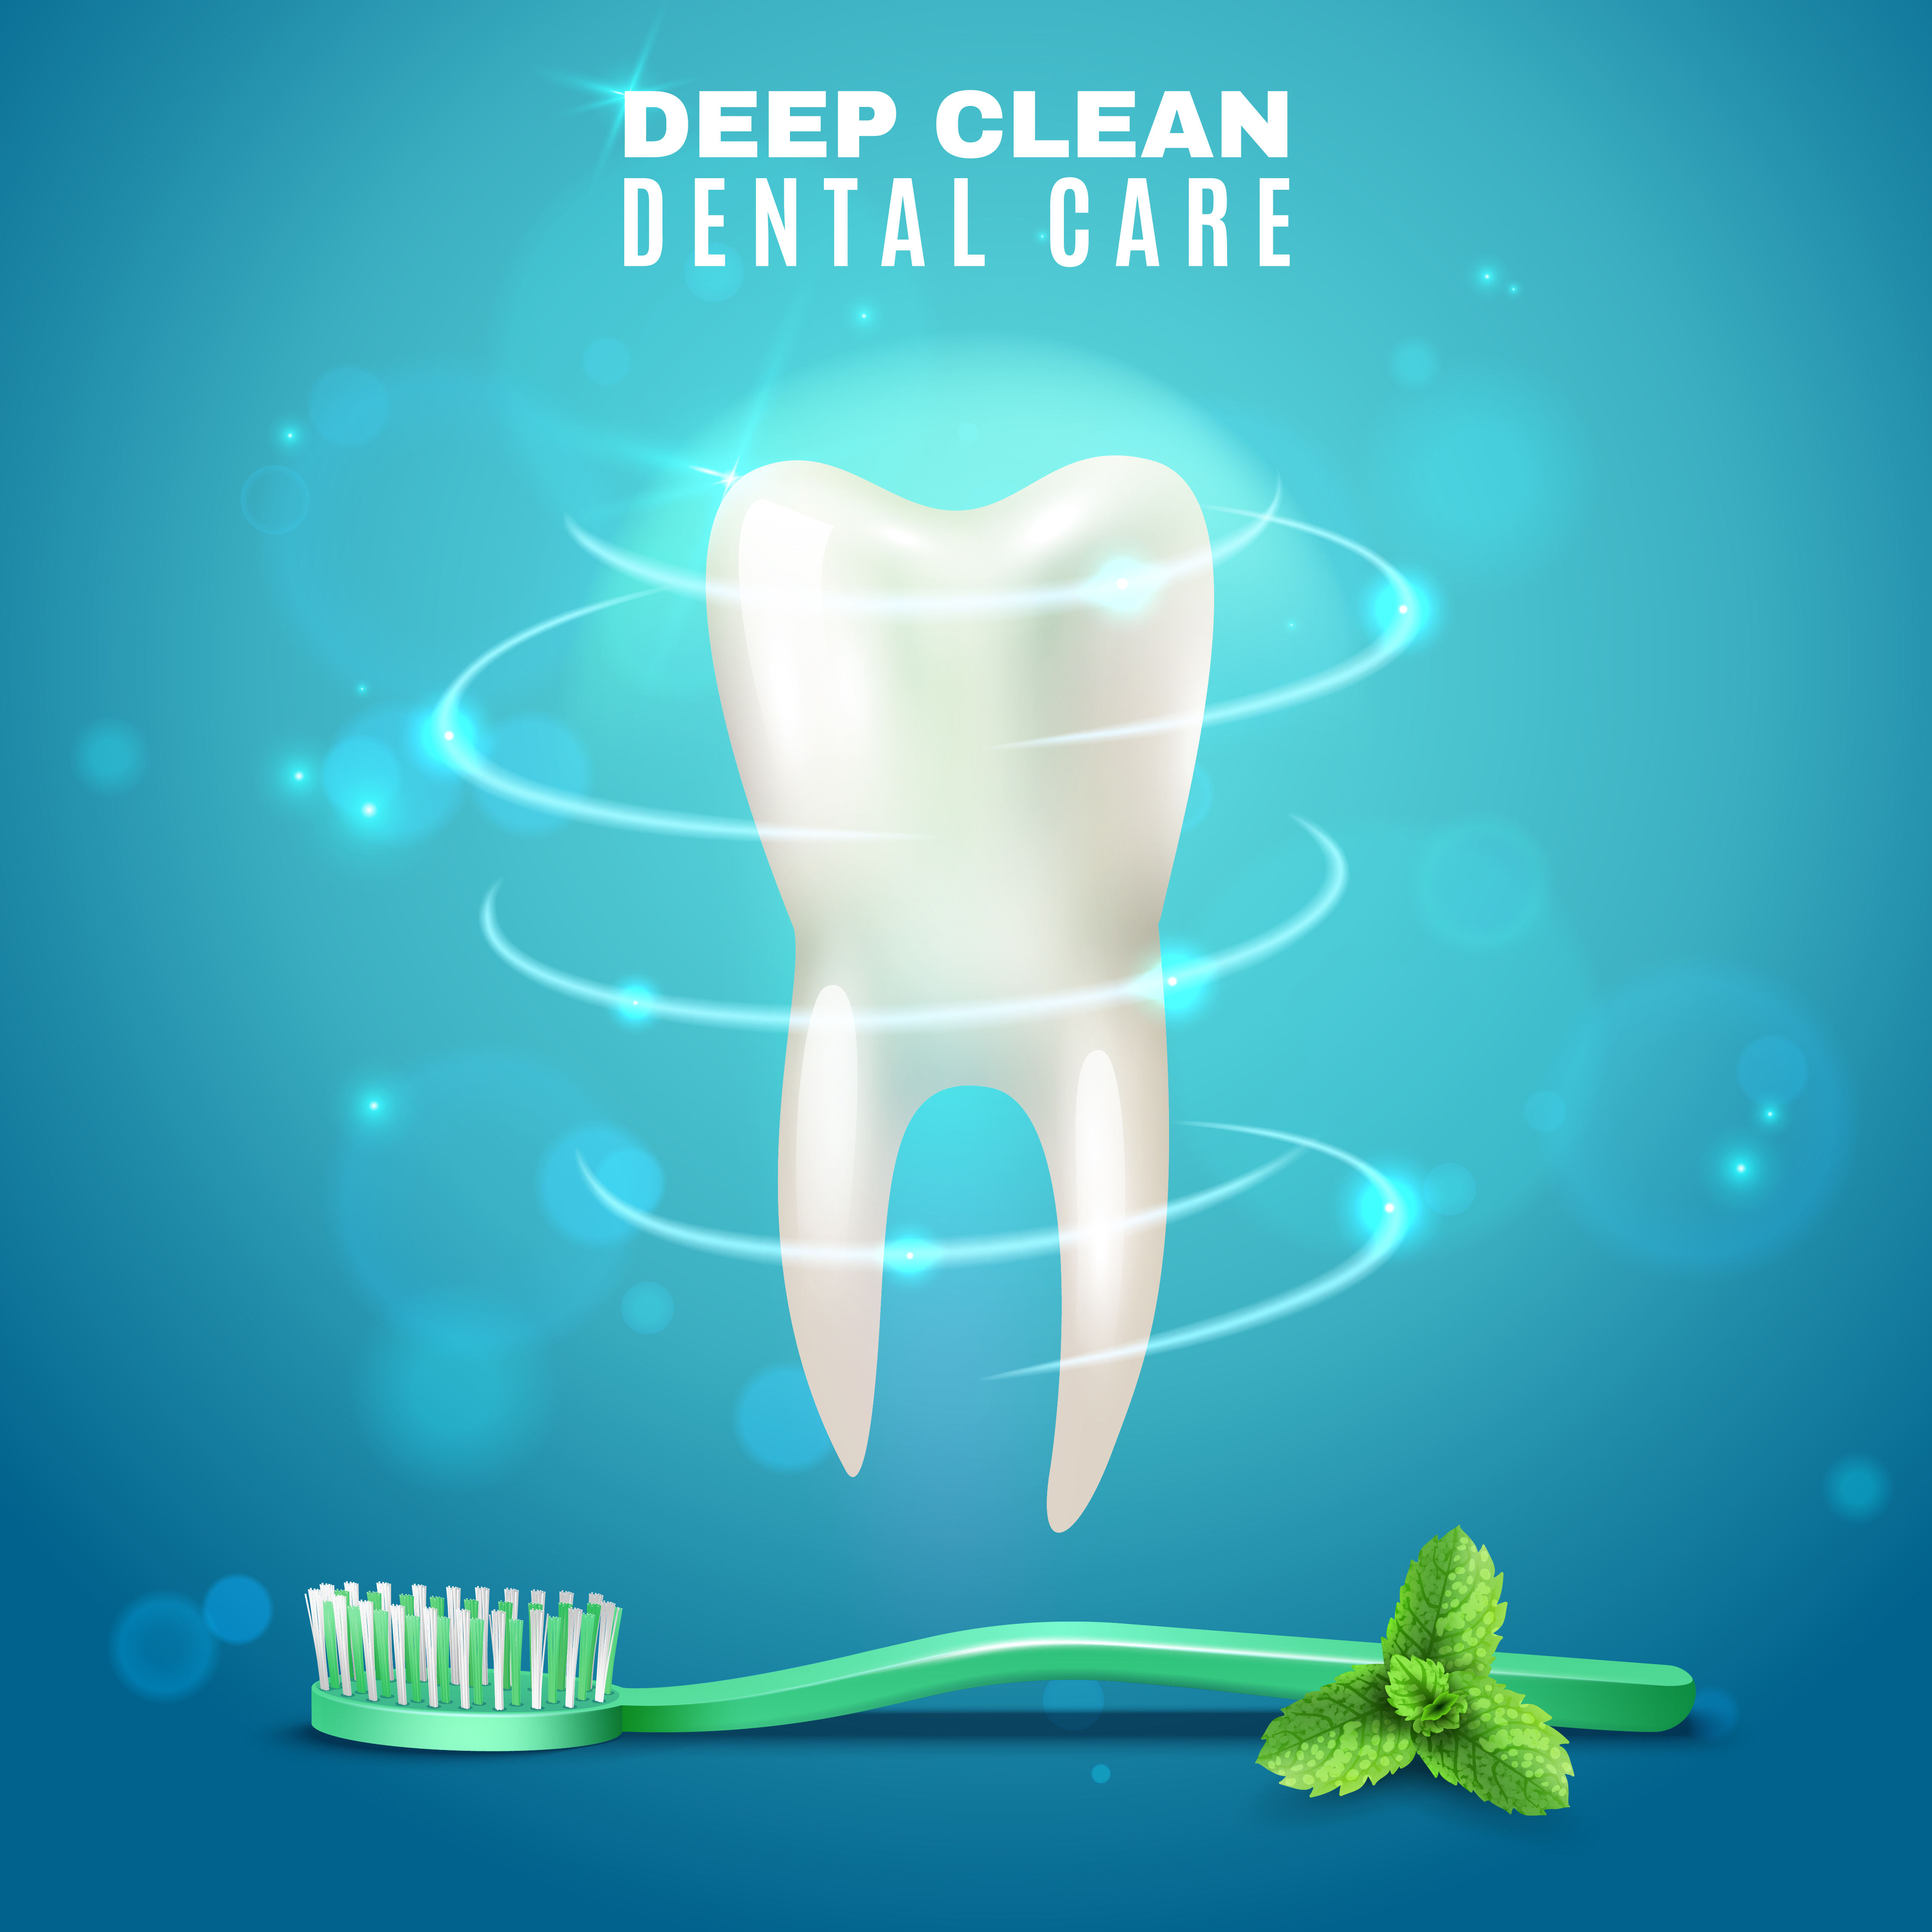 Deep Cleaning Dental Care Background Poster Download